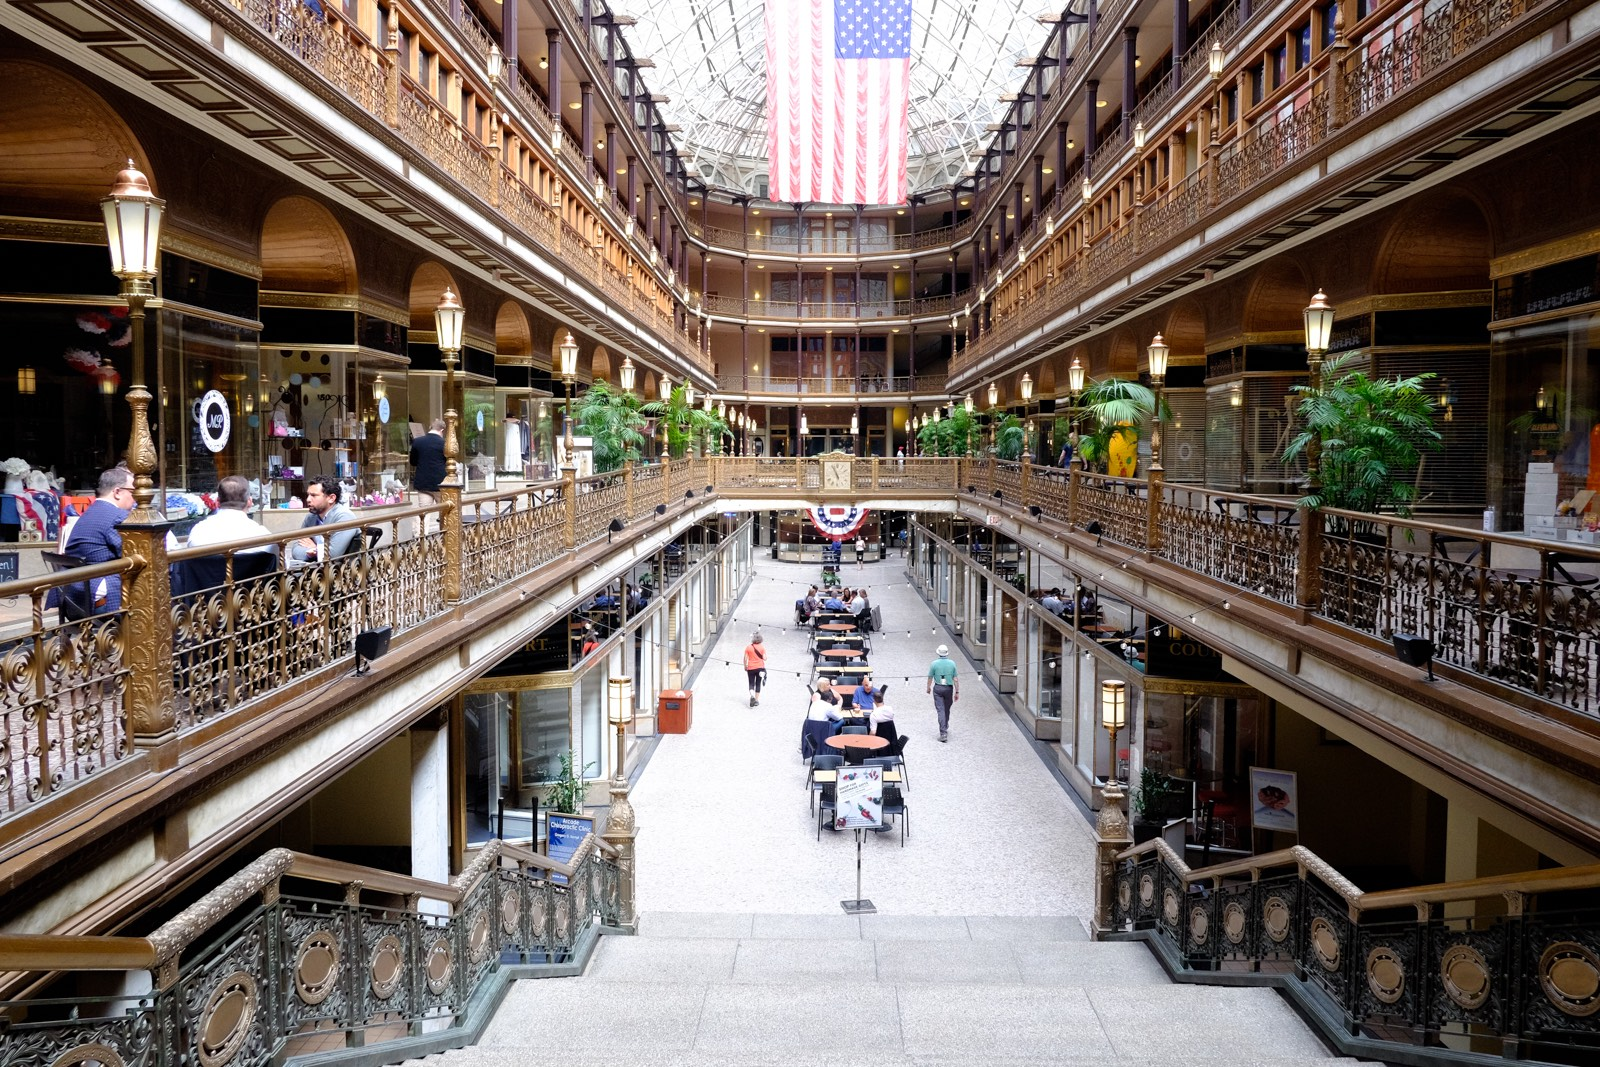 The Old Arcade in Cleveland